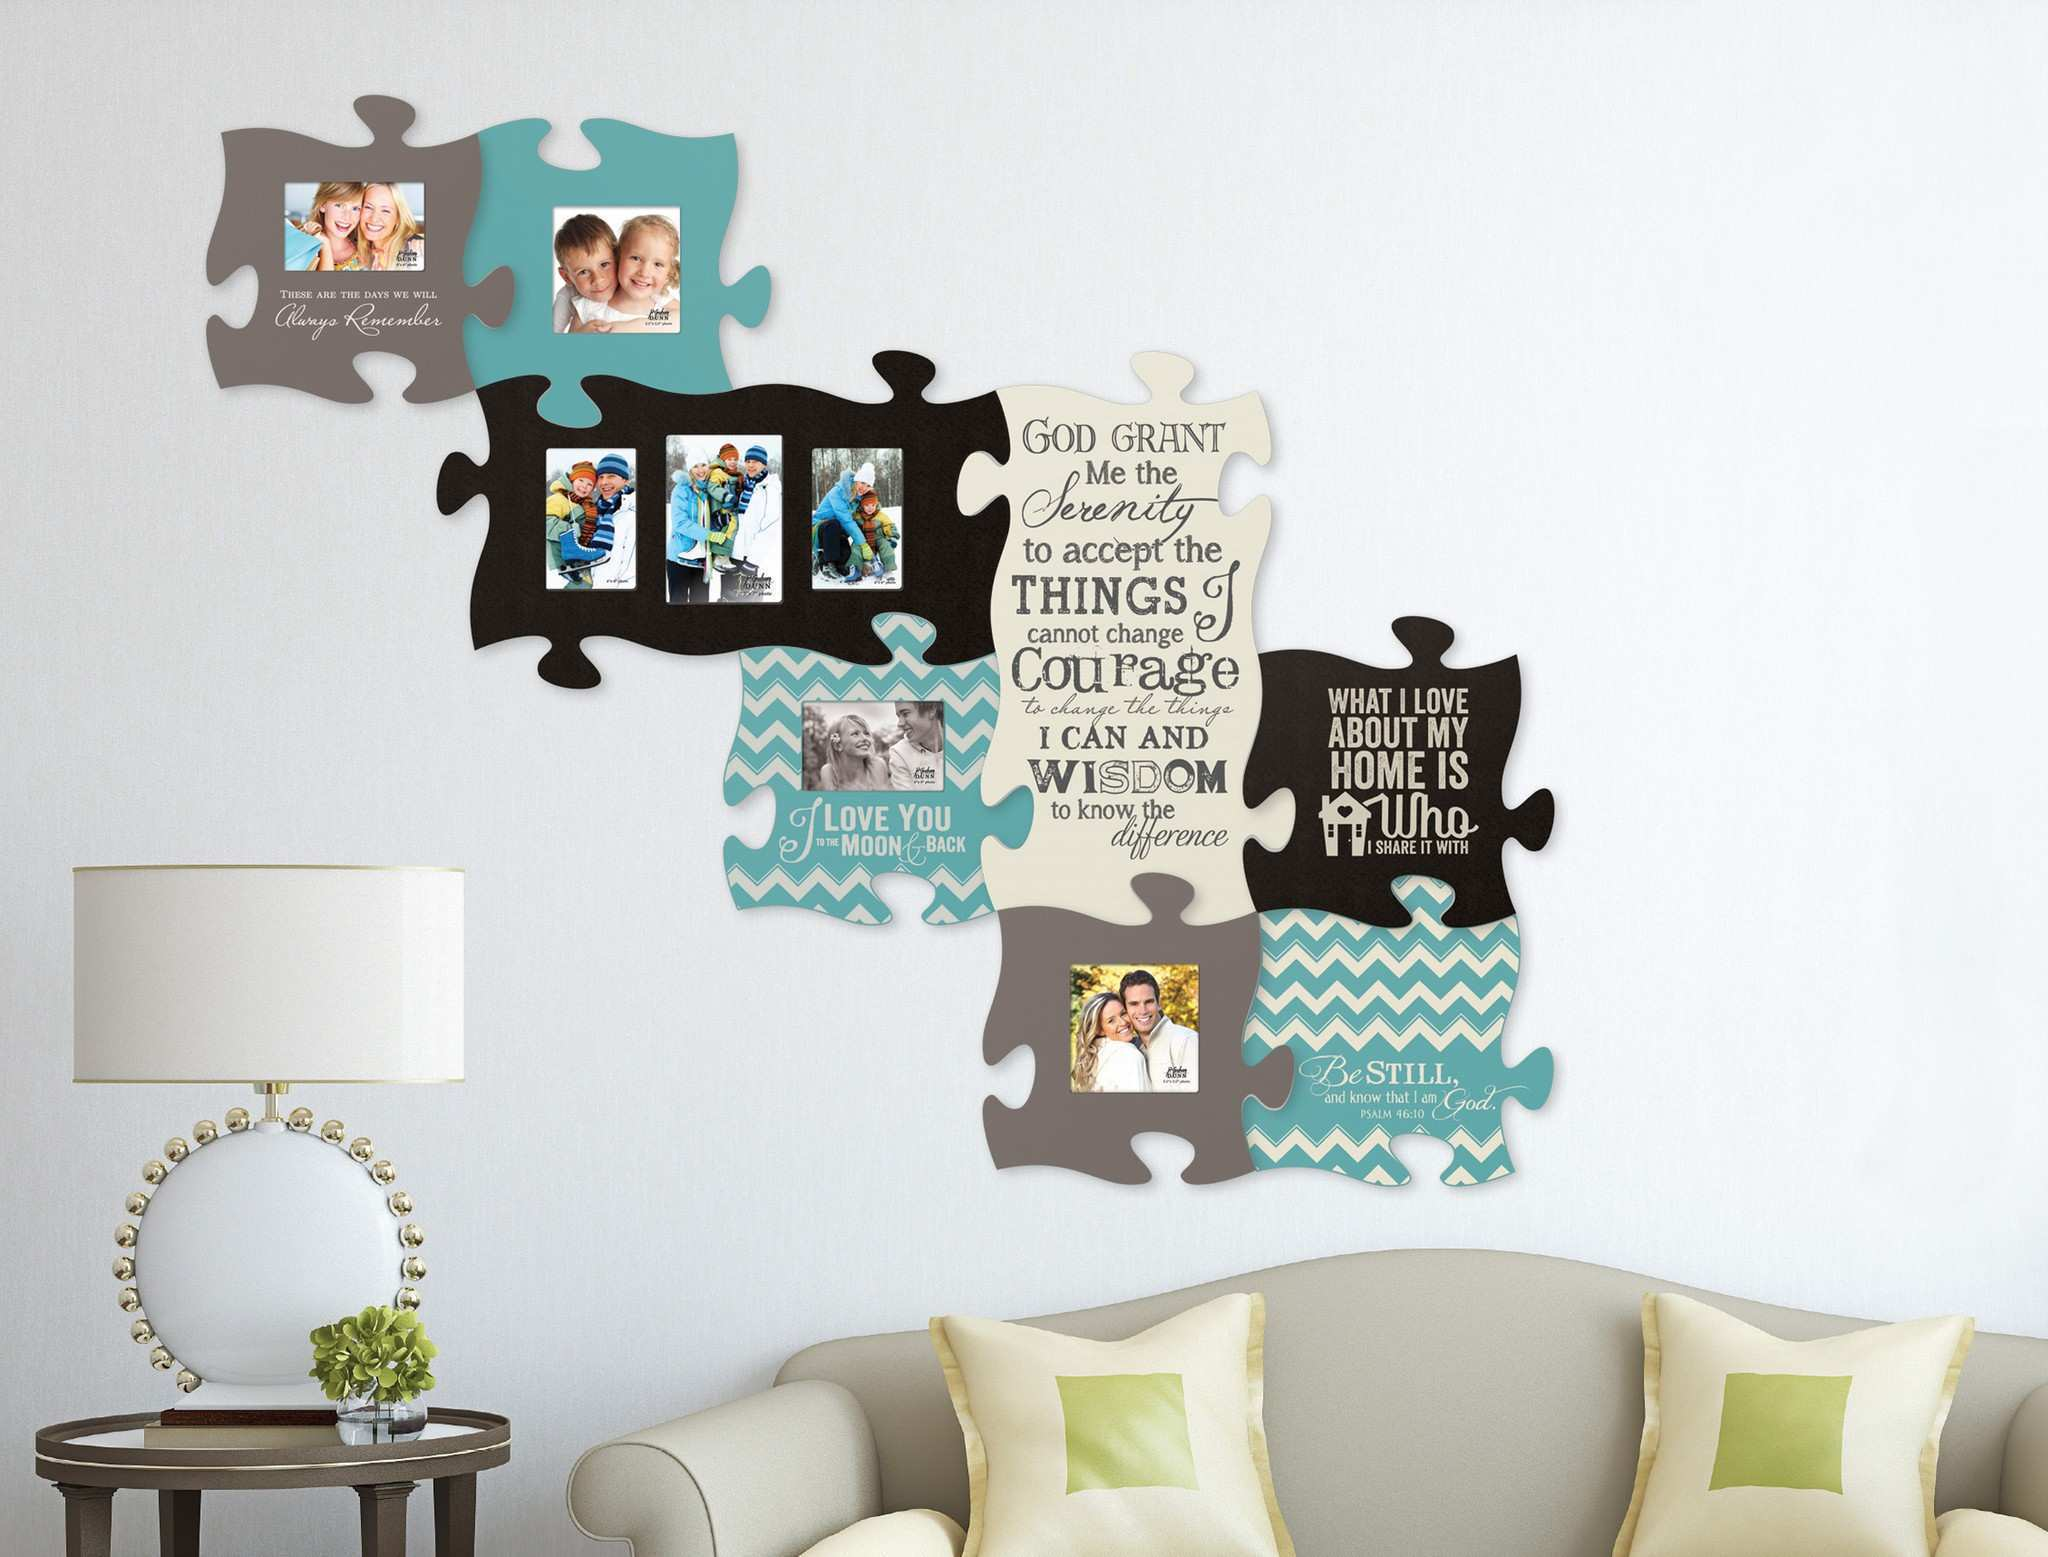 Free Download Image Fresh Family Wall Picture Frames 650*494